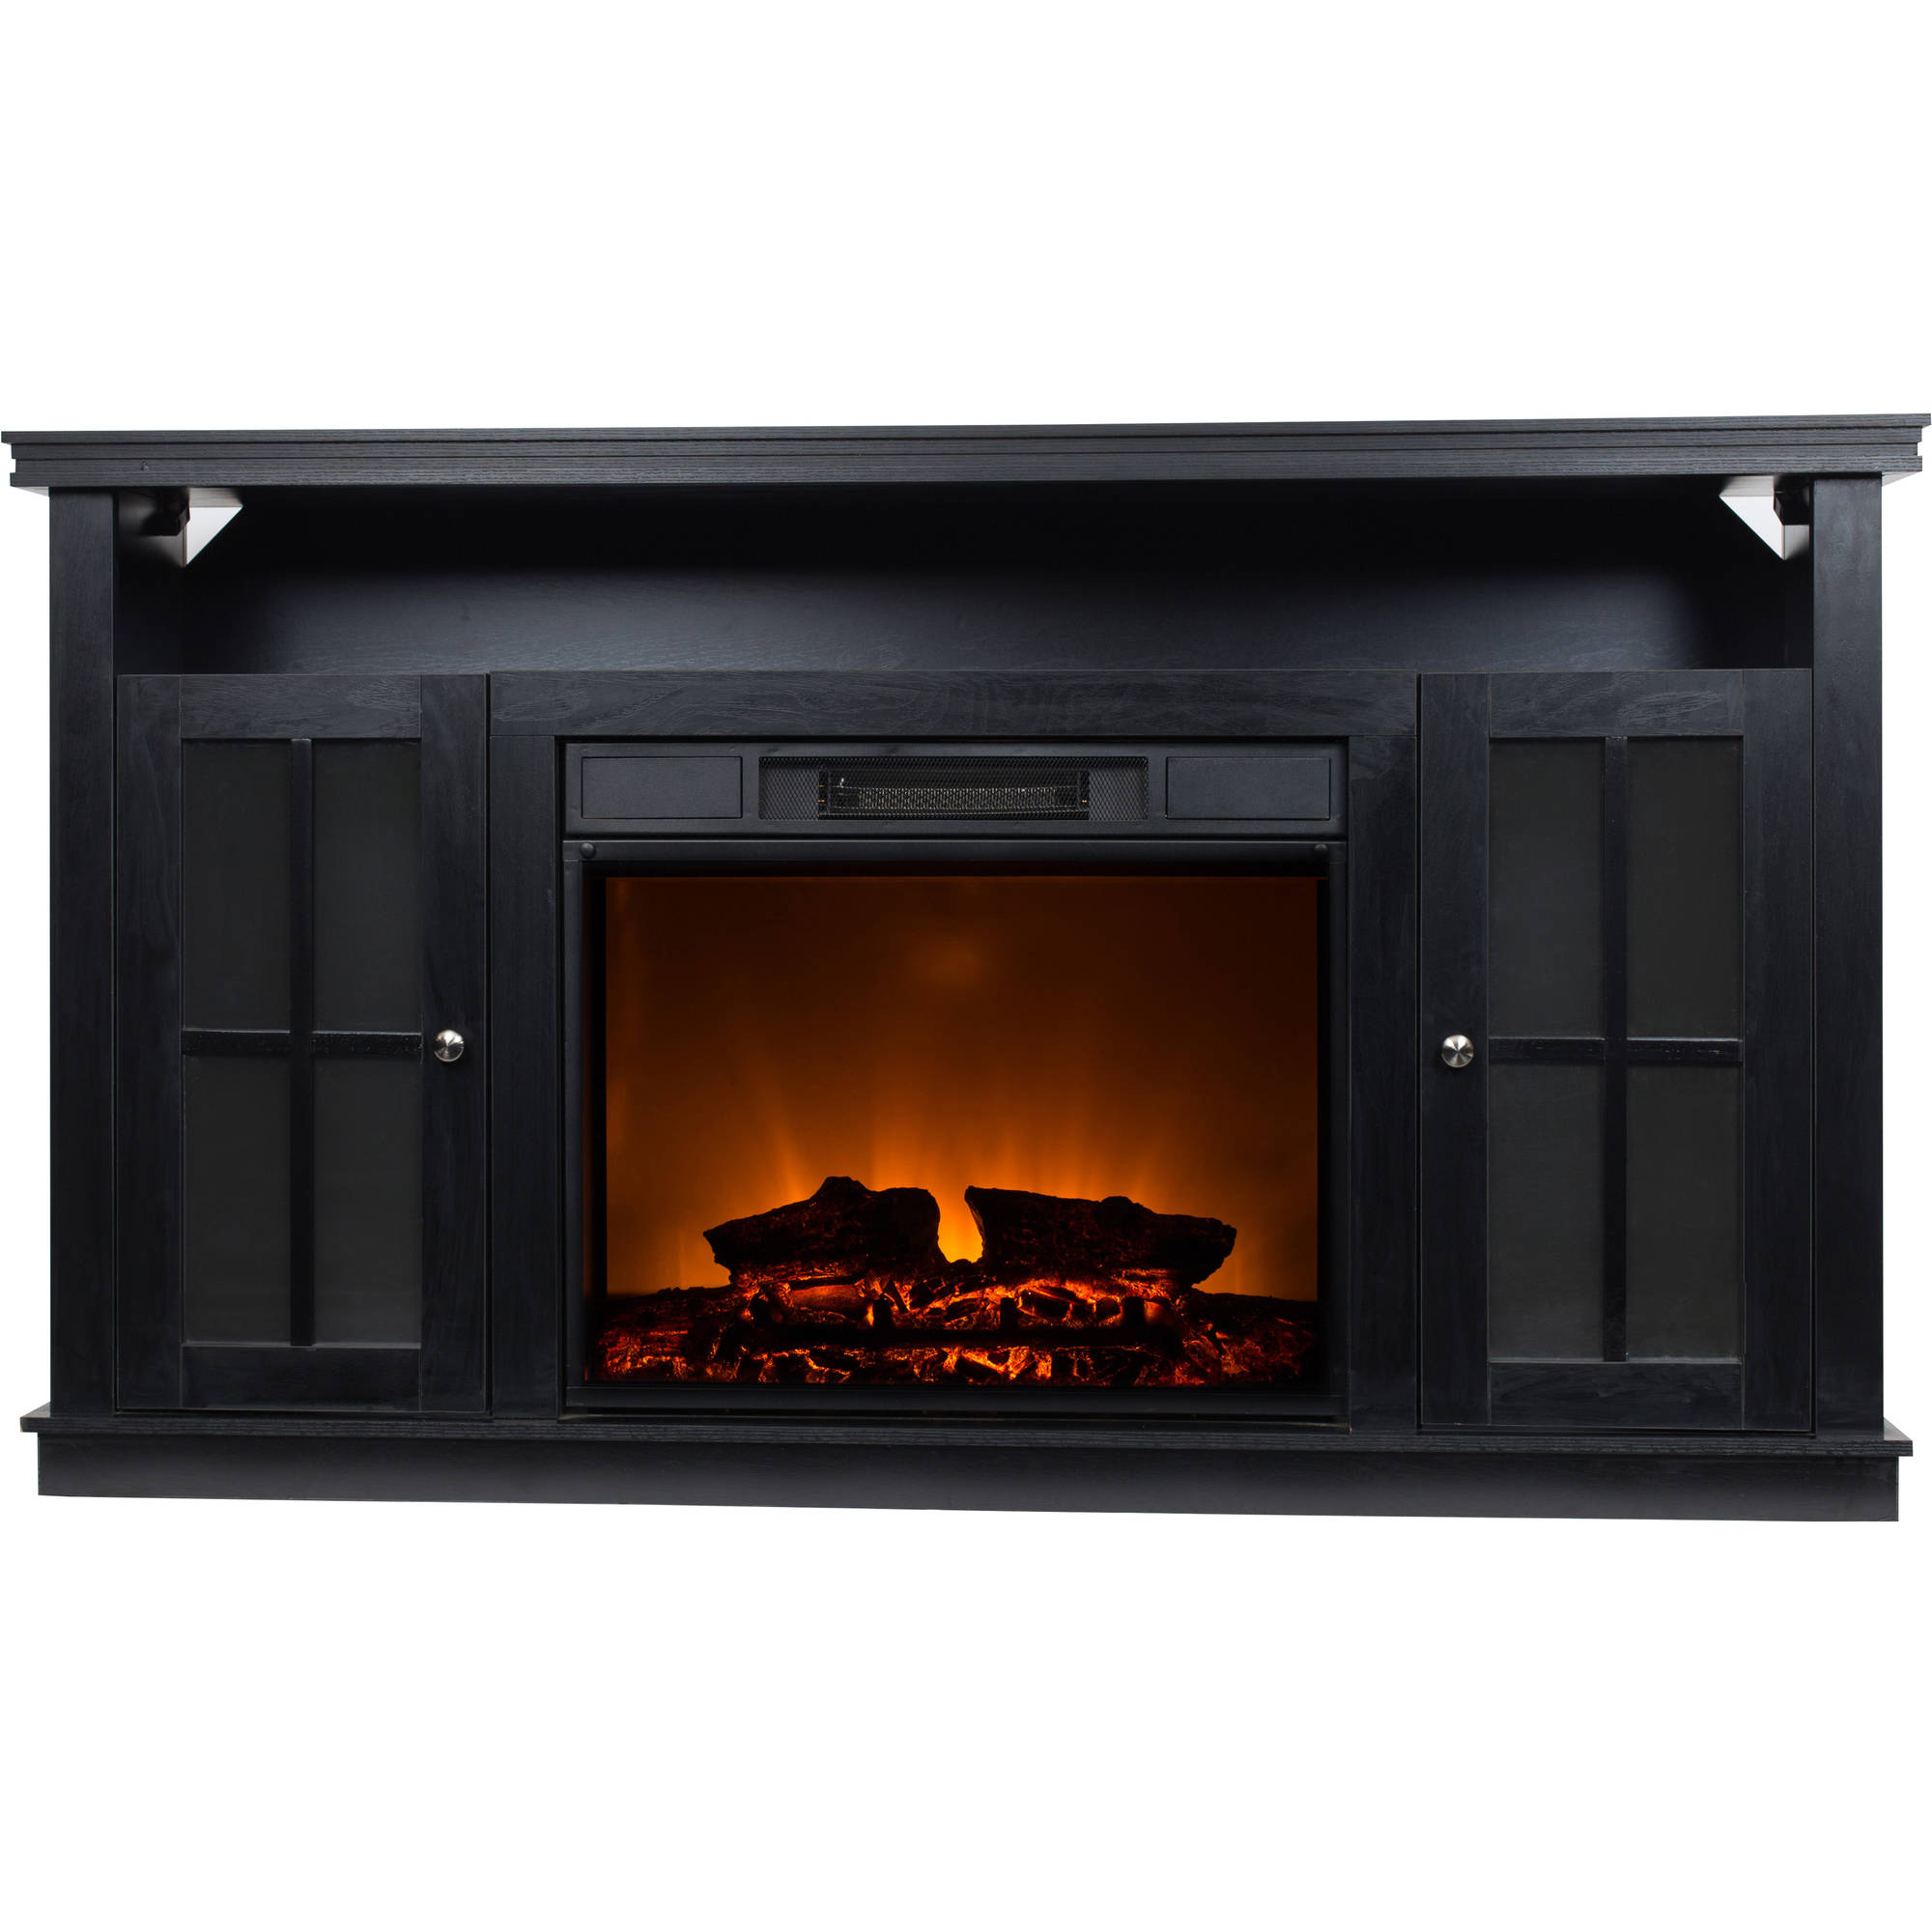 "Décor Flame Monarch 56"" Media Fireplace, for TVs up to 65"", Black"